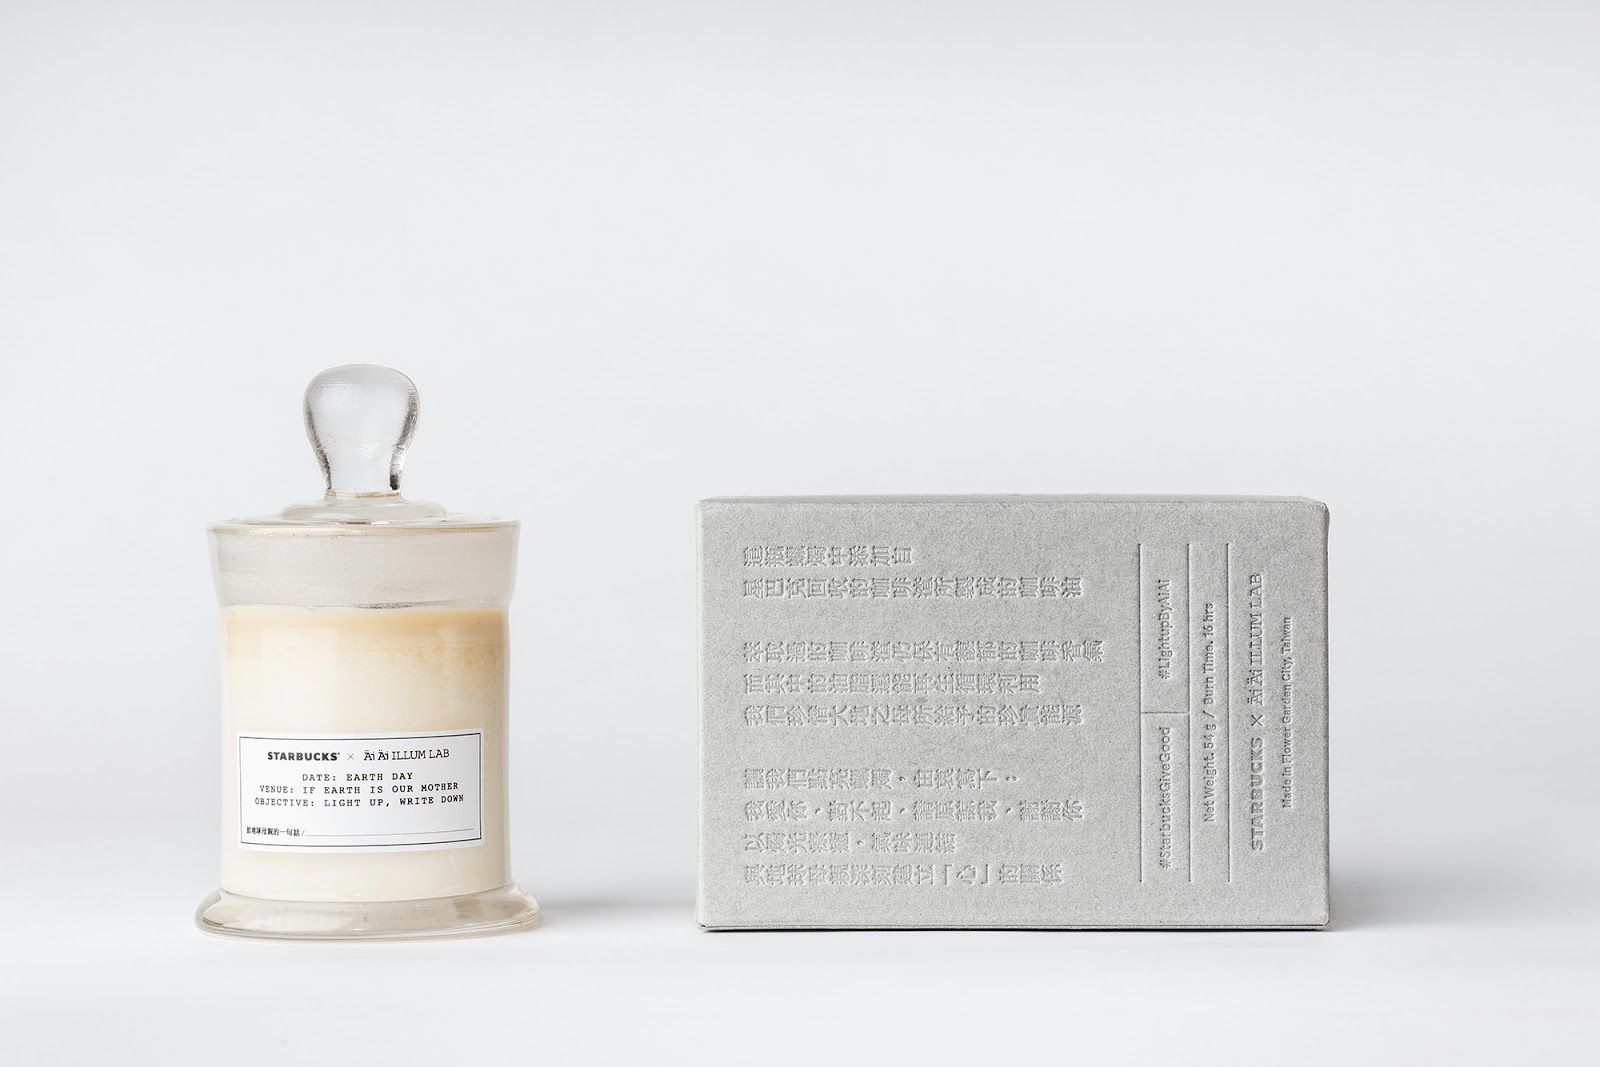 Starbucks X Aiai Illum Lab Candles Starbucks Taiwan Packaging